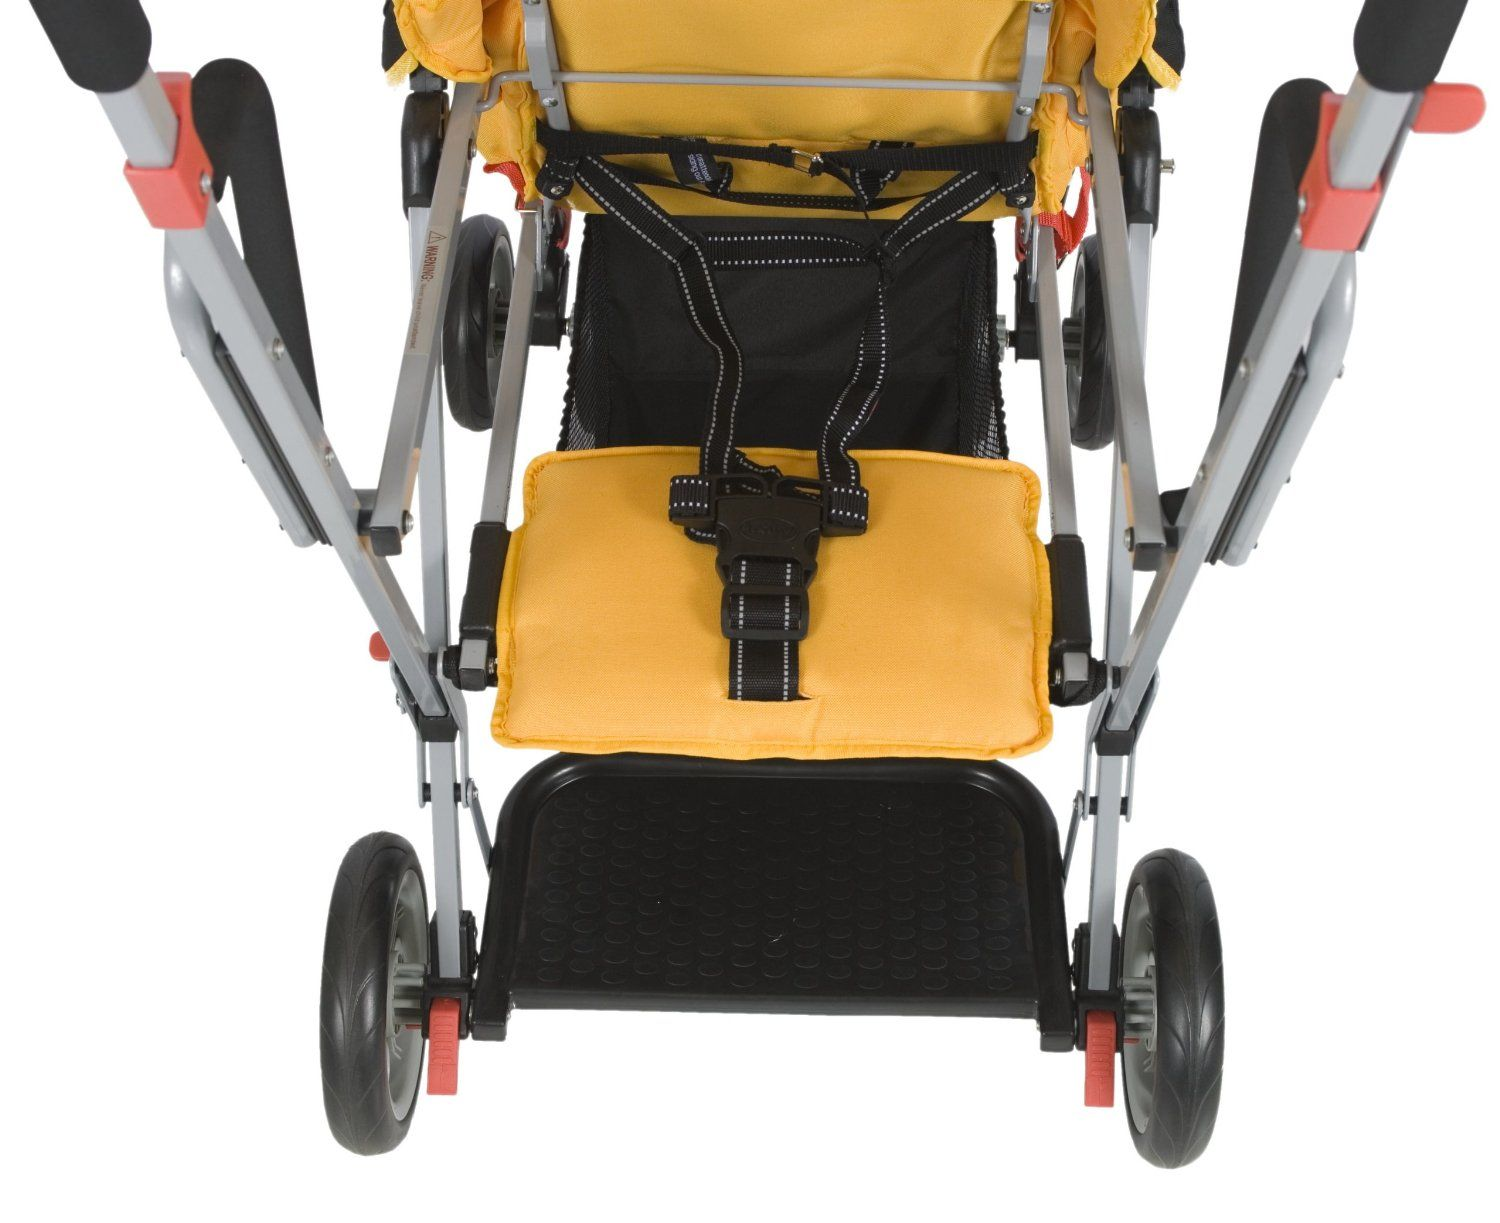 Joovy Caboose Stand On Tandem Stroller Review (With images